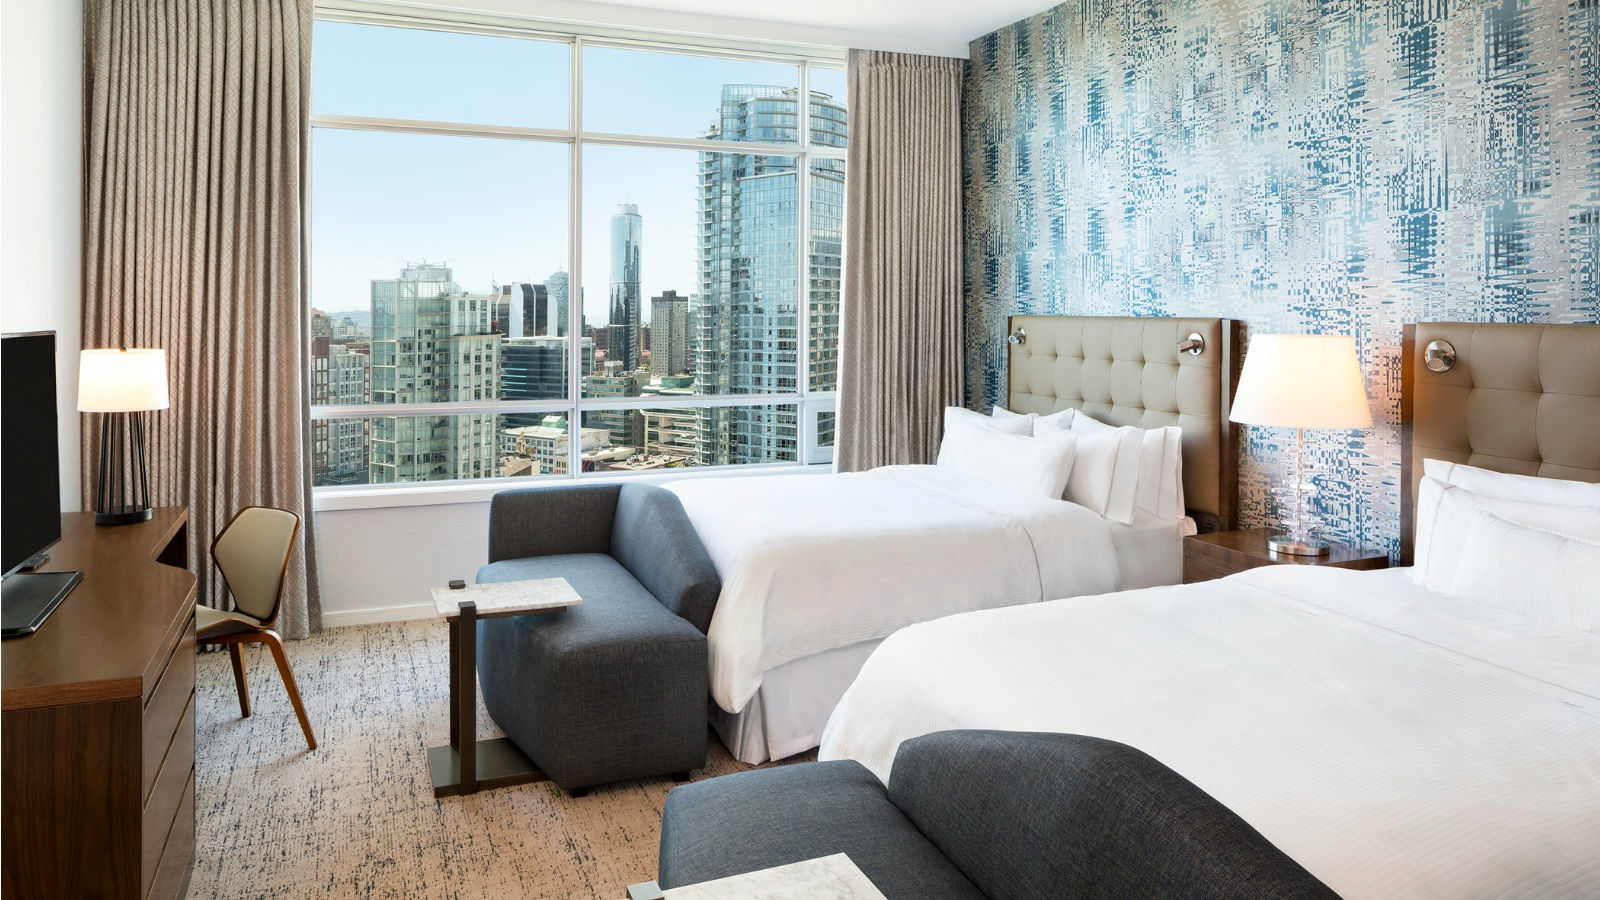 The Westin Grand, Vancouver - Premier View Studio Rooms with Two Queens